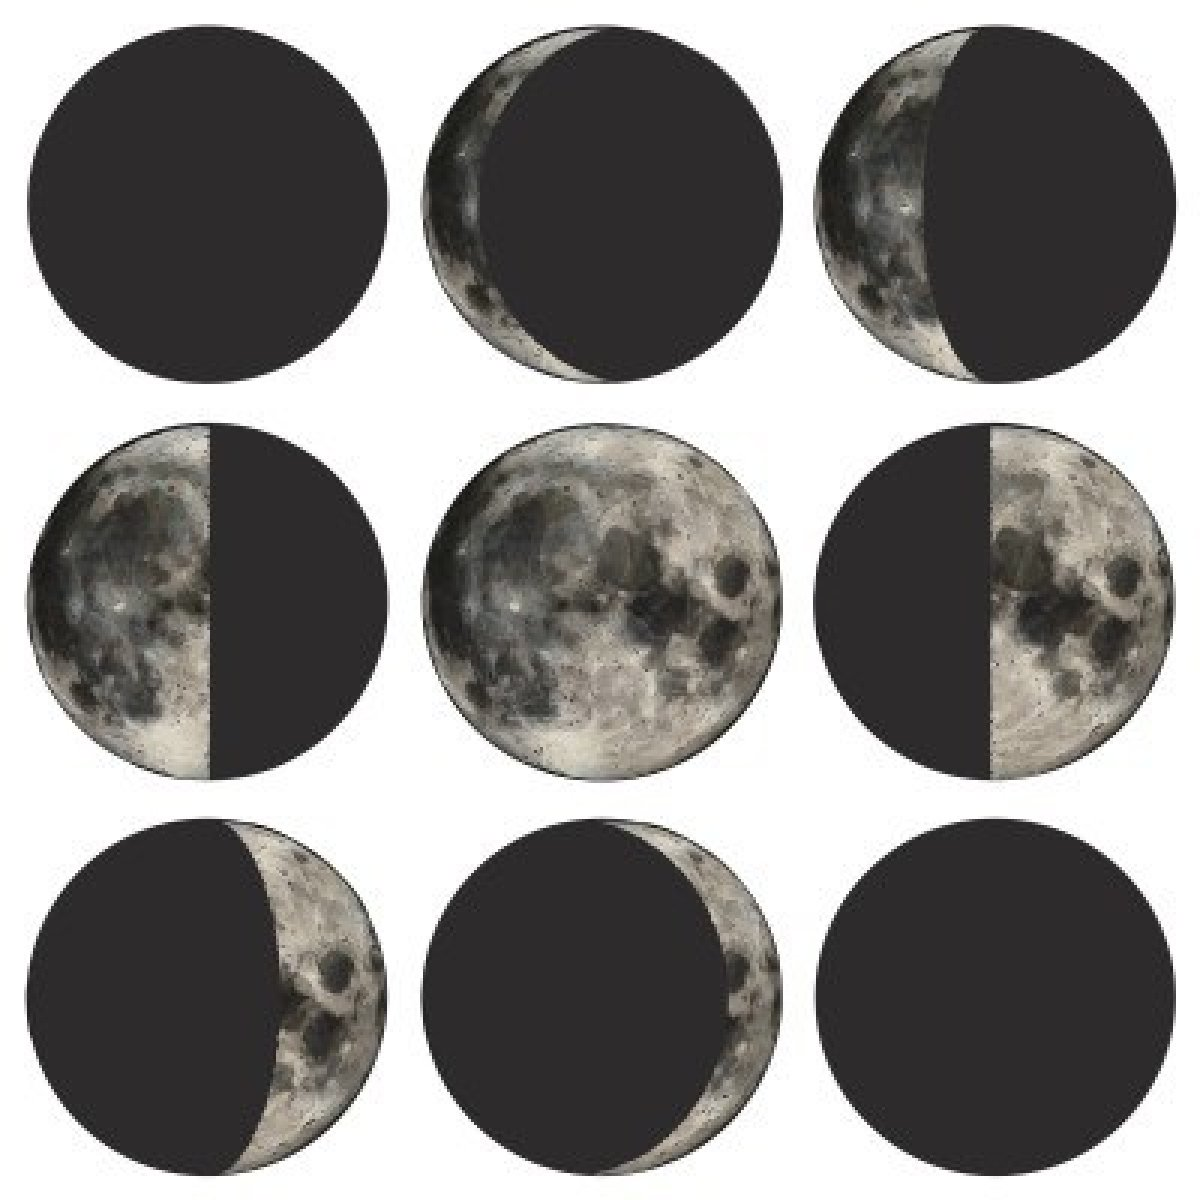 Phase Of The Moon Today